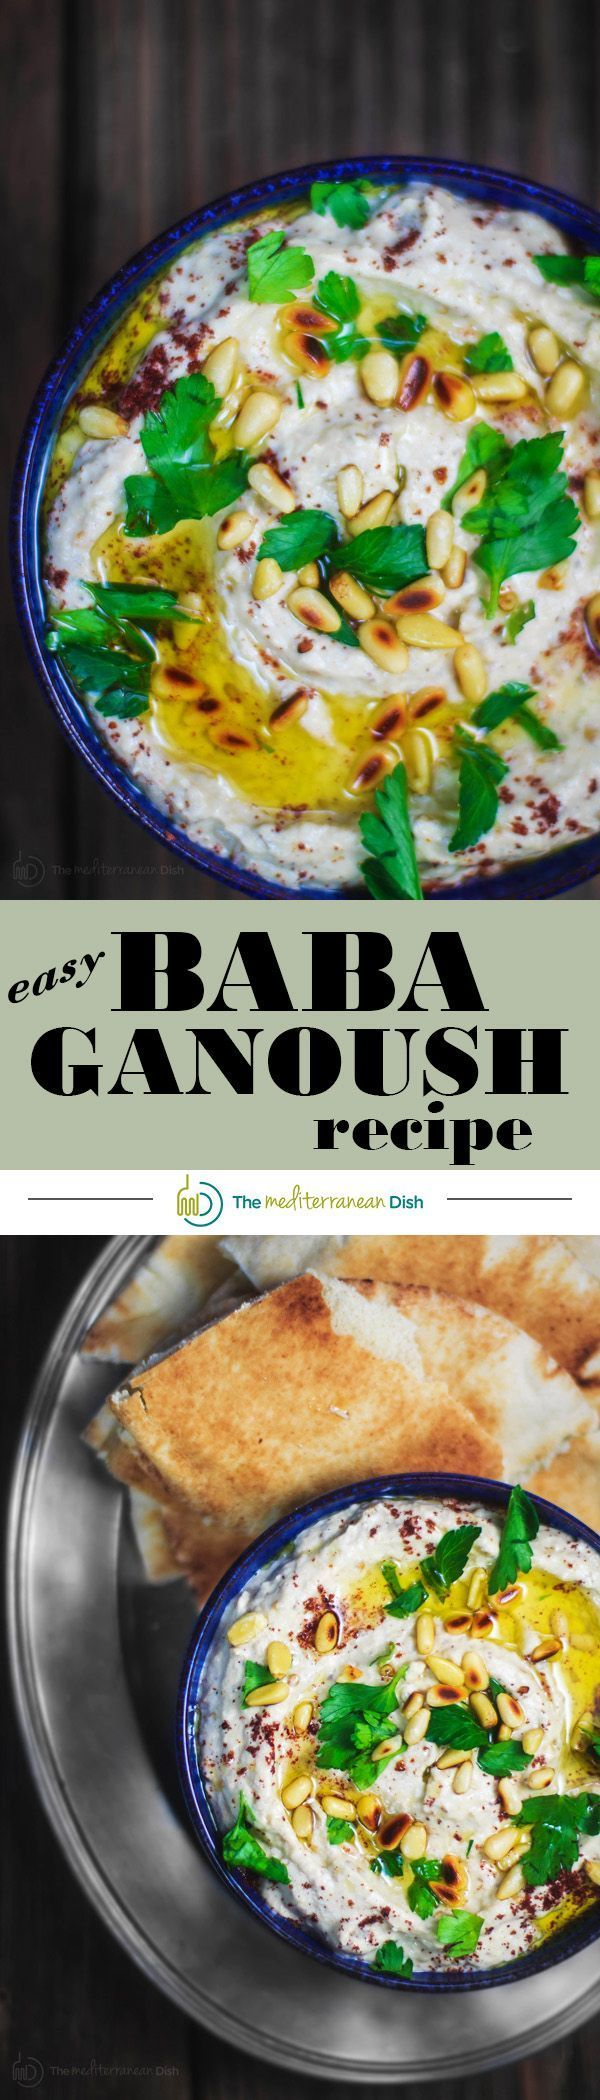 Easy Baba Ganoush Recipe   The Mediterranean Dish. A silky, flavor-packed roasted eggplant dip with tahini, garlic and yogurt. The perfect party appetizer, snack or a spread for your sandwiches. Recipe comes with step-by-step photos!